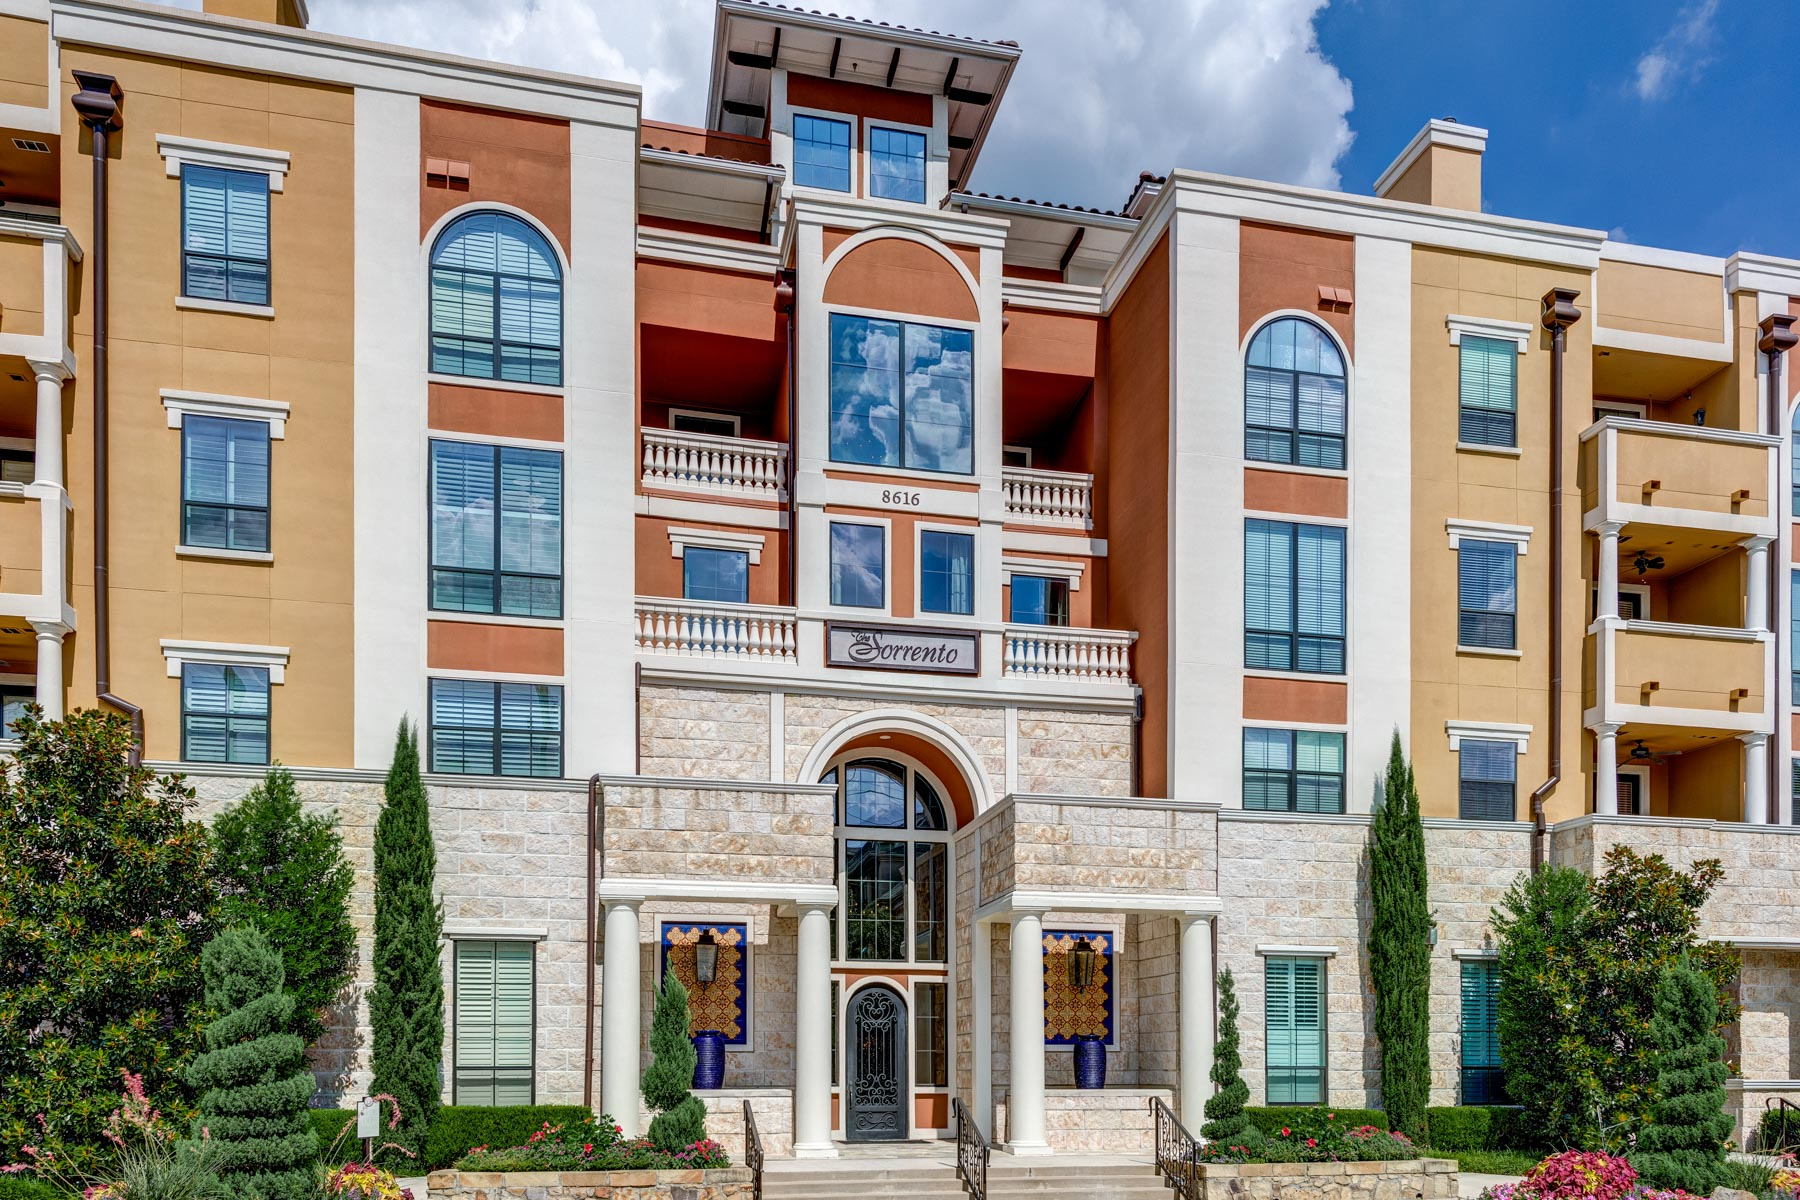 Copropriété pour l Vente à Preston Hollow Condo at The Sorrento 8616 Turtle Creek Blvd. #409 Dallas, Texas, 75225 États-Unis